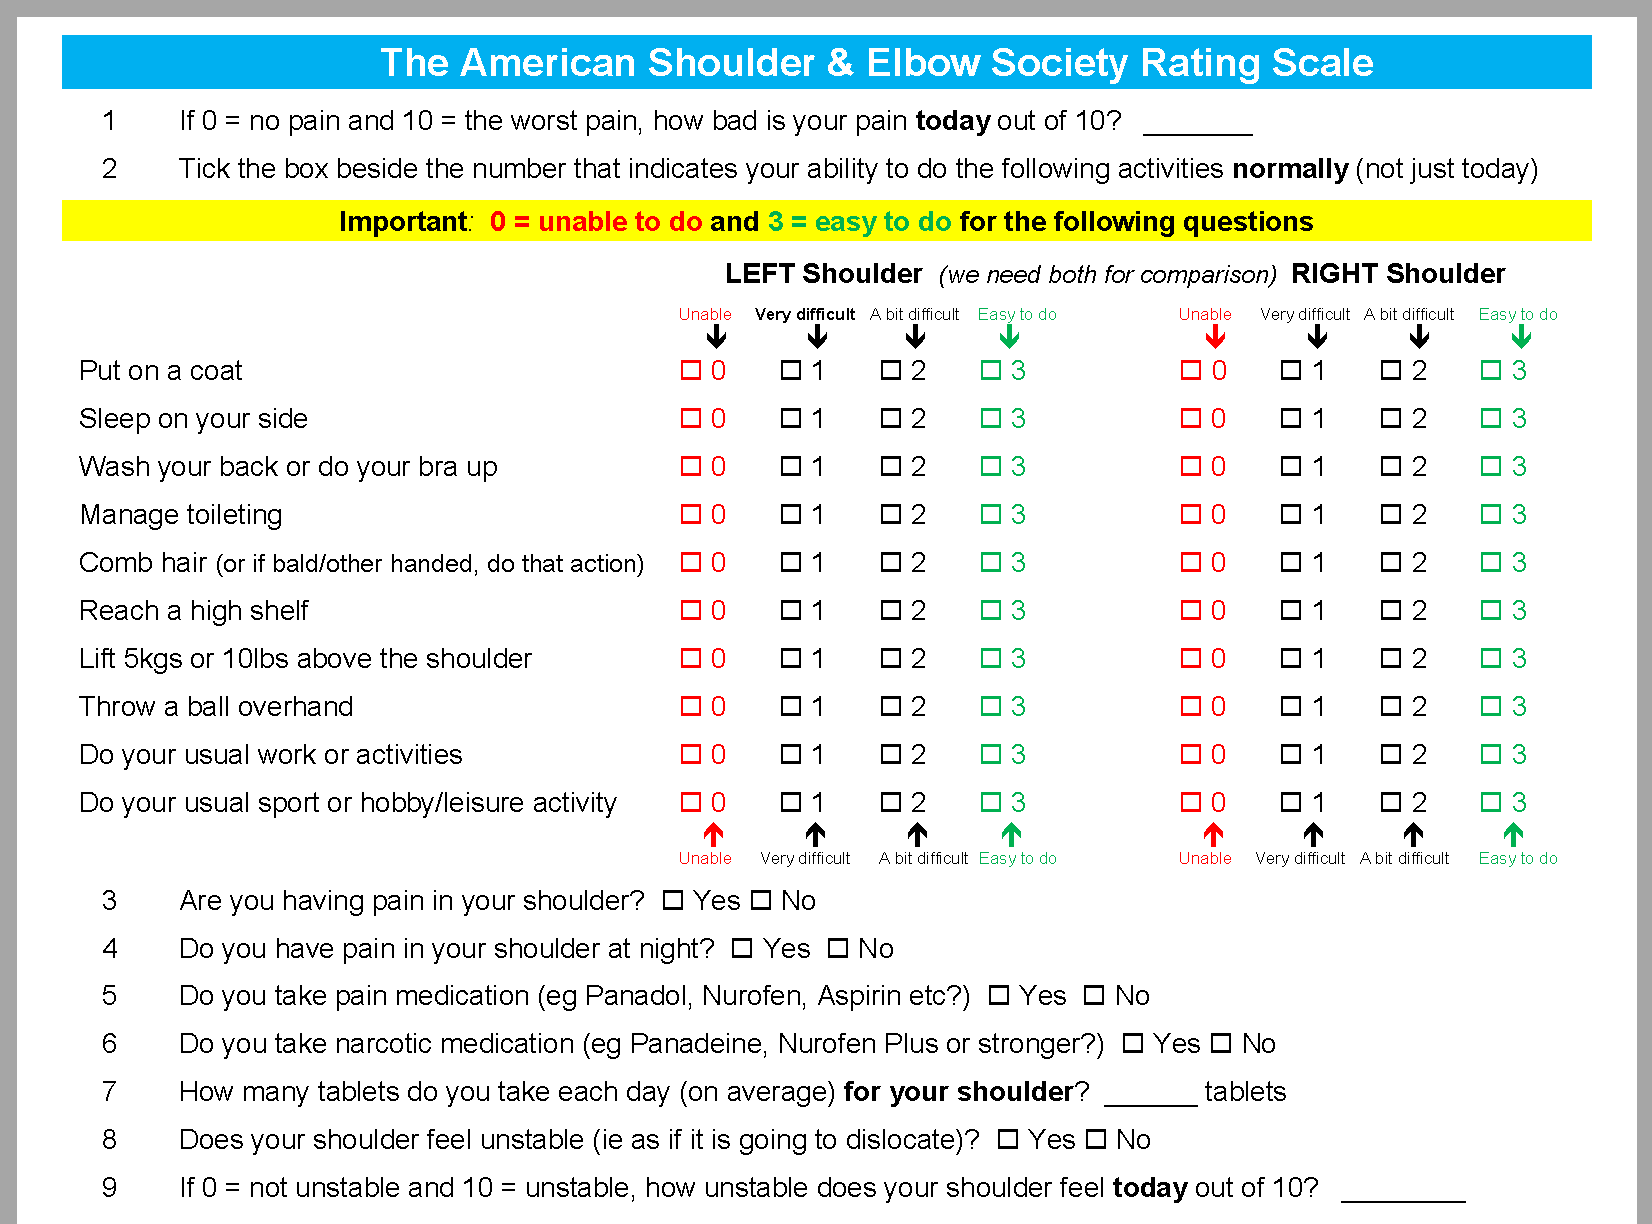 The American Shoulder & Elbow Society Rating Scale (Shoulder)